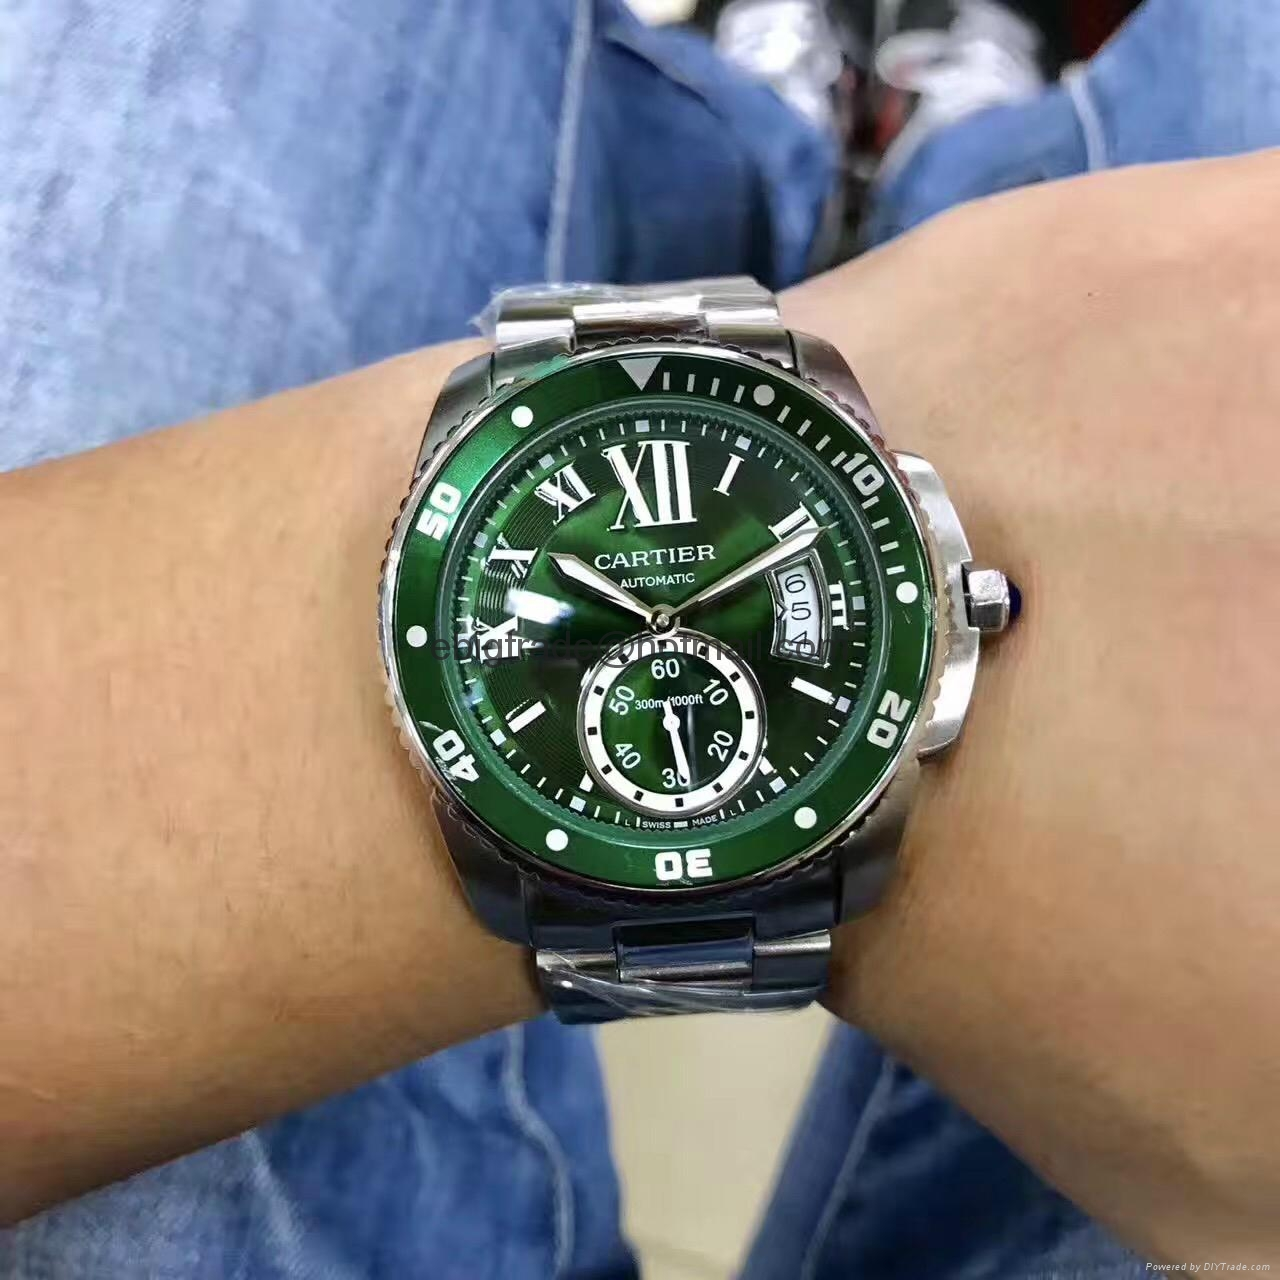 Cartier Watches replica